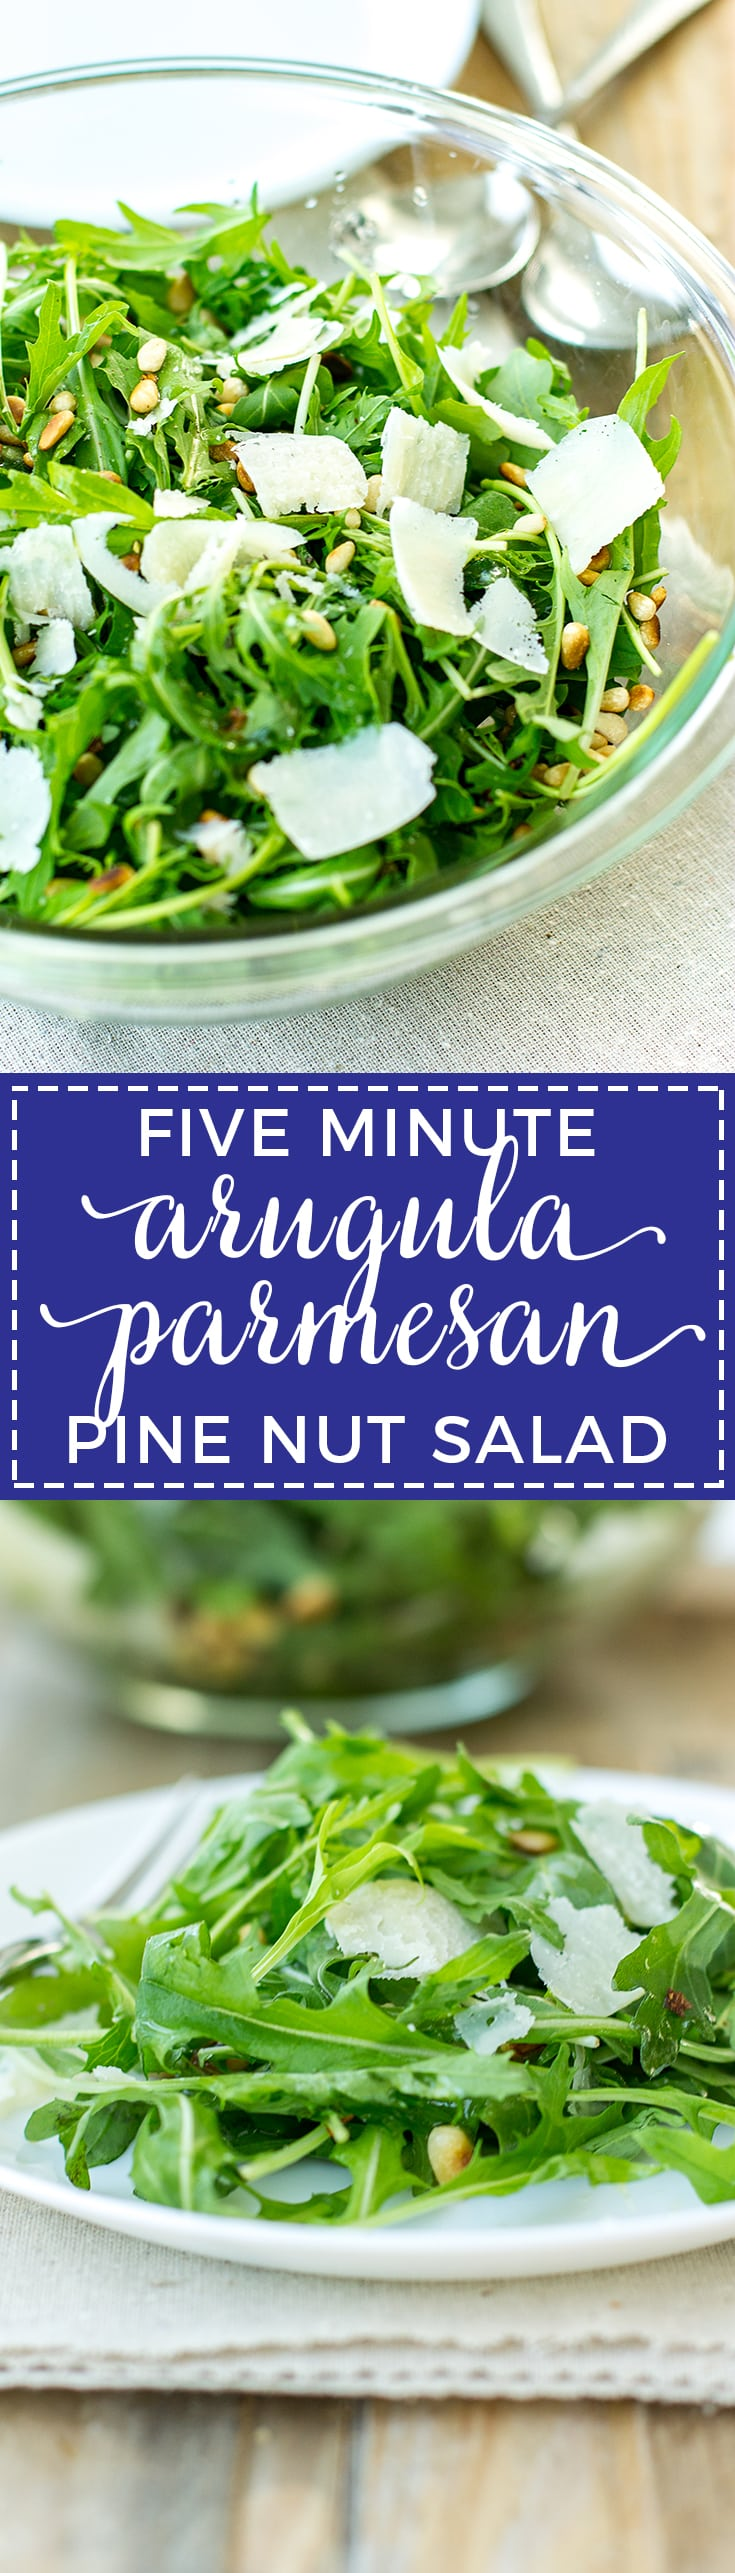 An arugula parmesan pine nut salad that's ready in five minutes (really!), out-of-this-world delicious, and great for casual weeknights or entertaining.